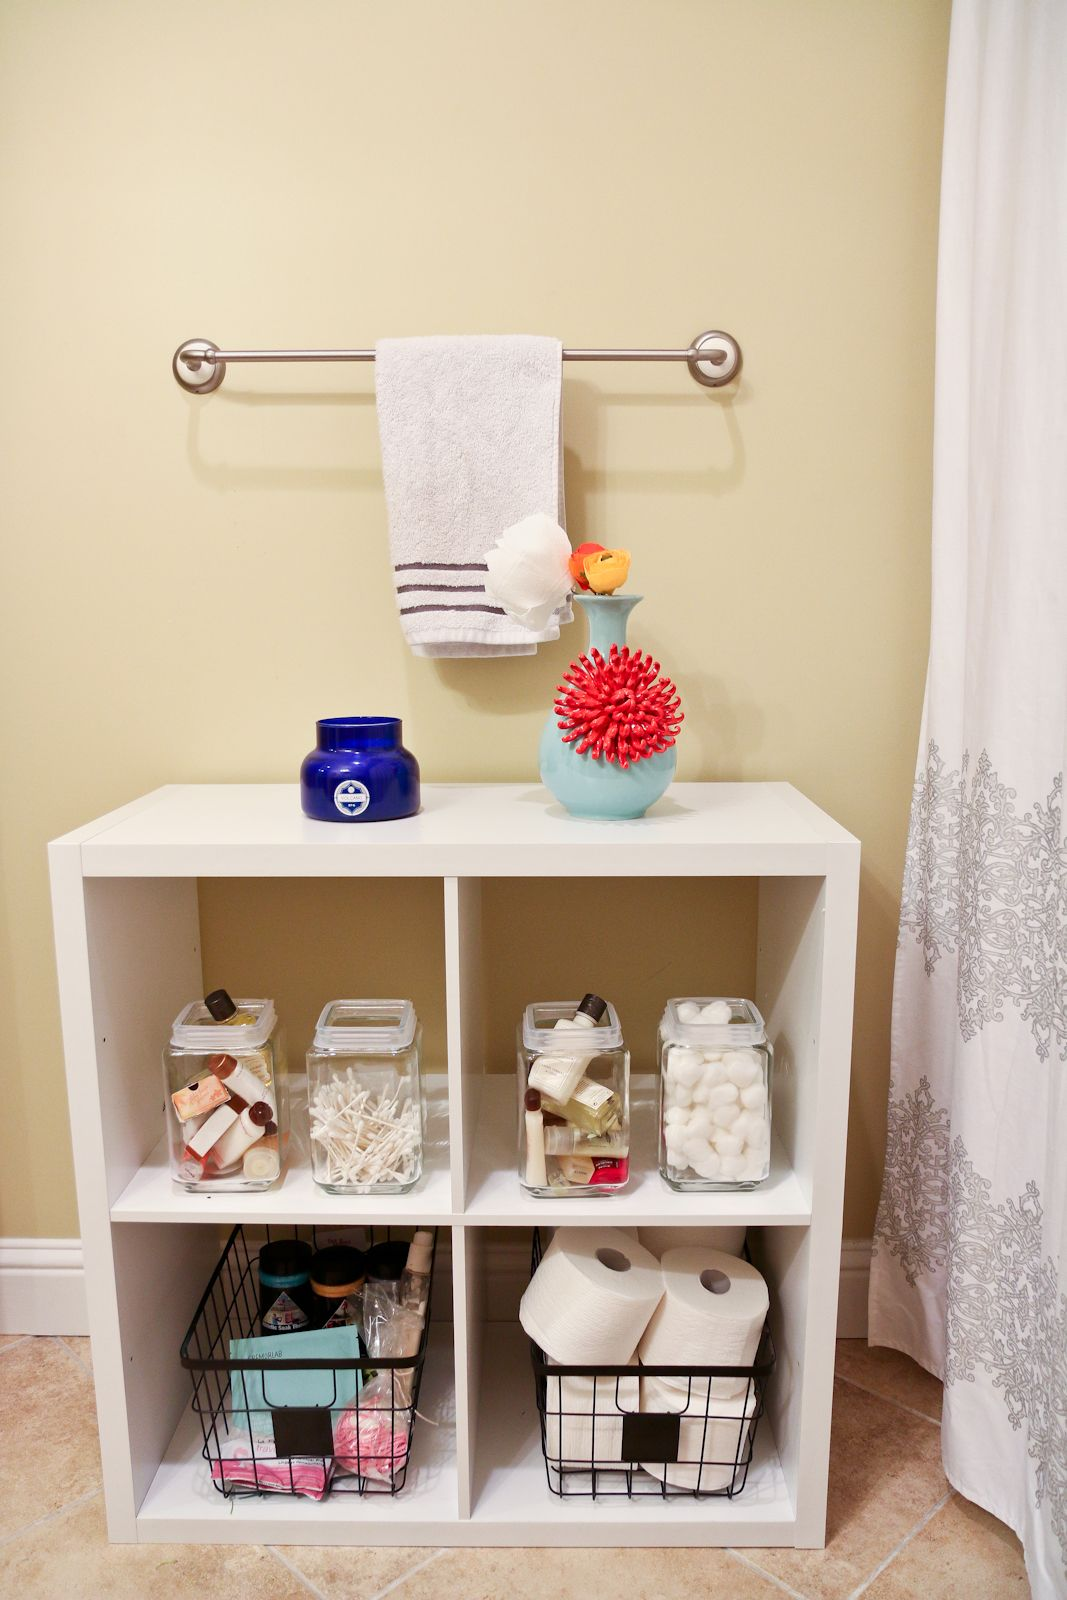 Bon Organize Your Guest Bathroom So That Necessary Supplies For Guests Are  Displayed Neatly In An Organizer